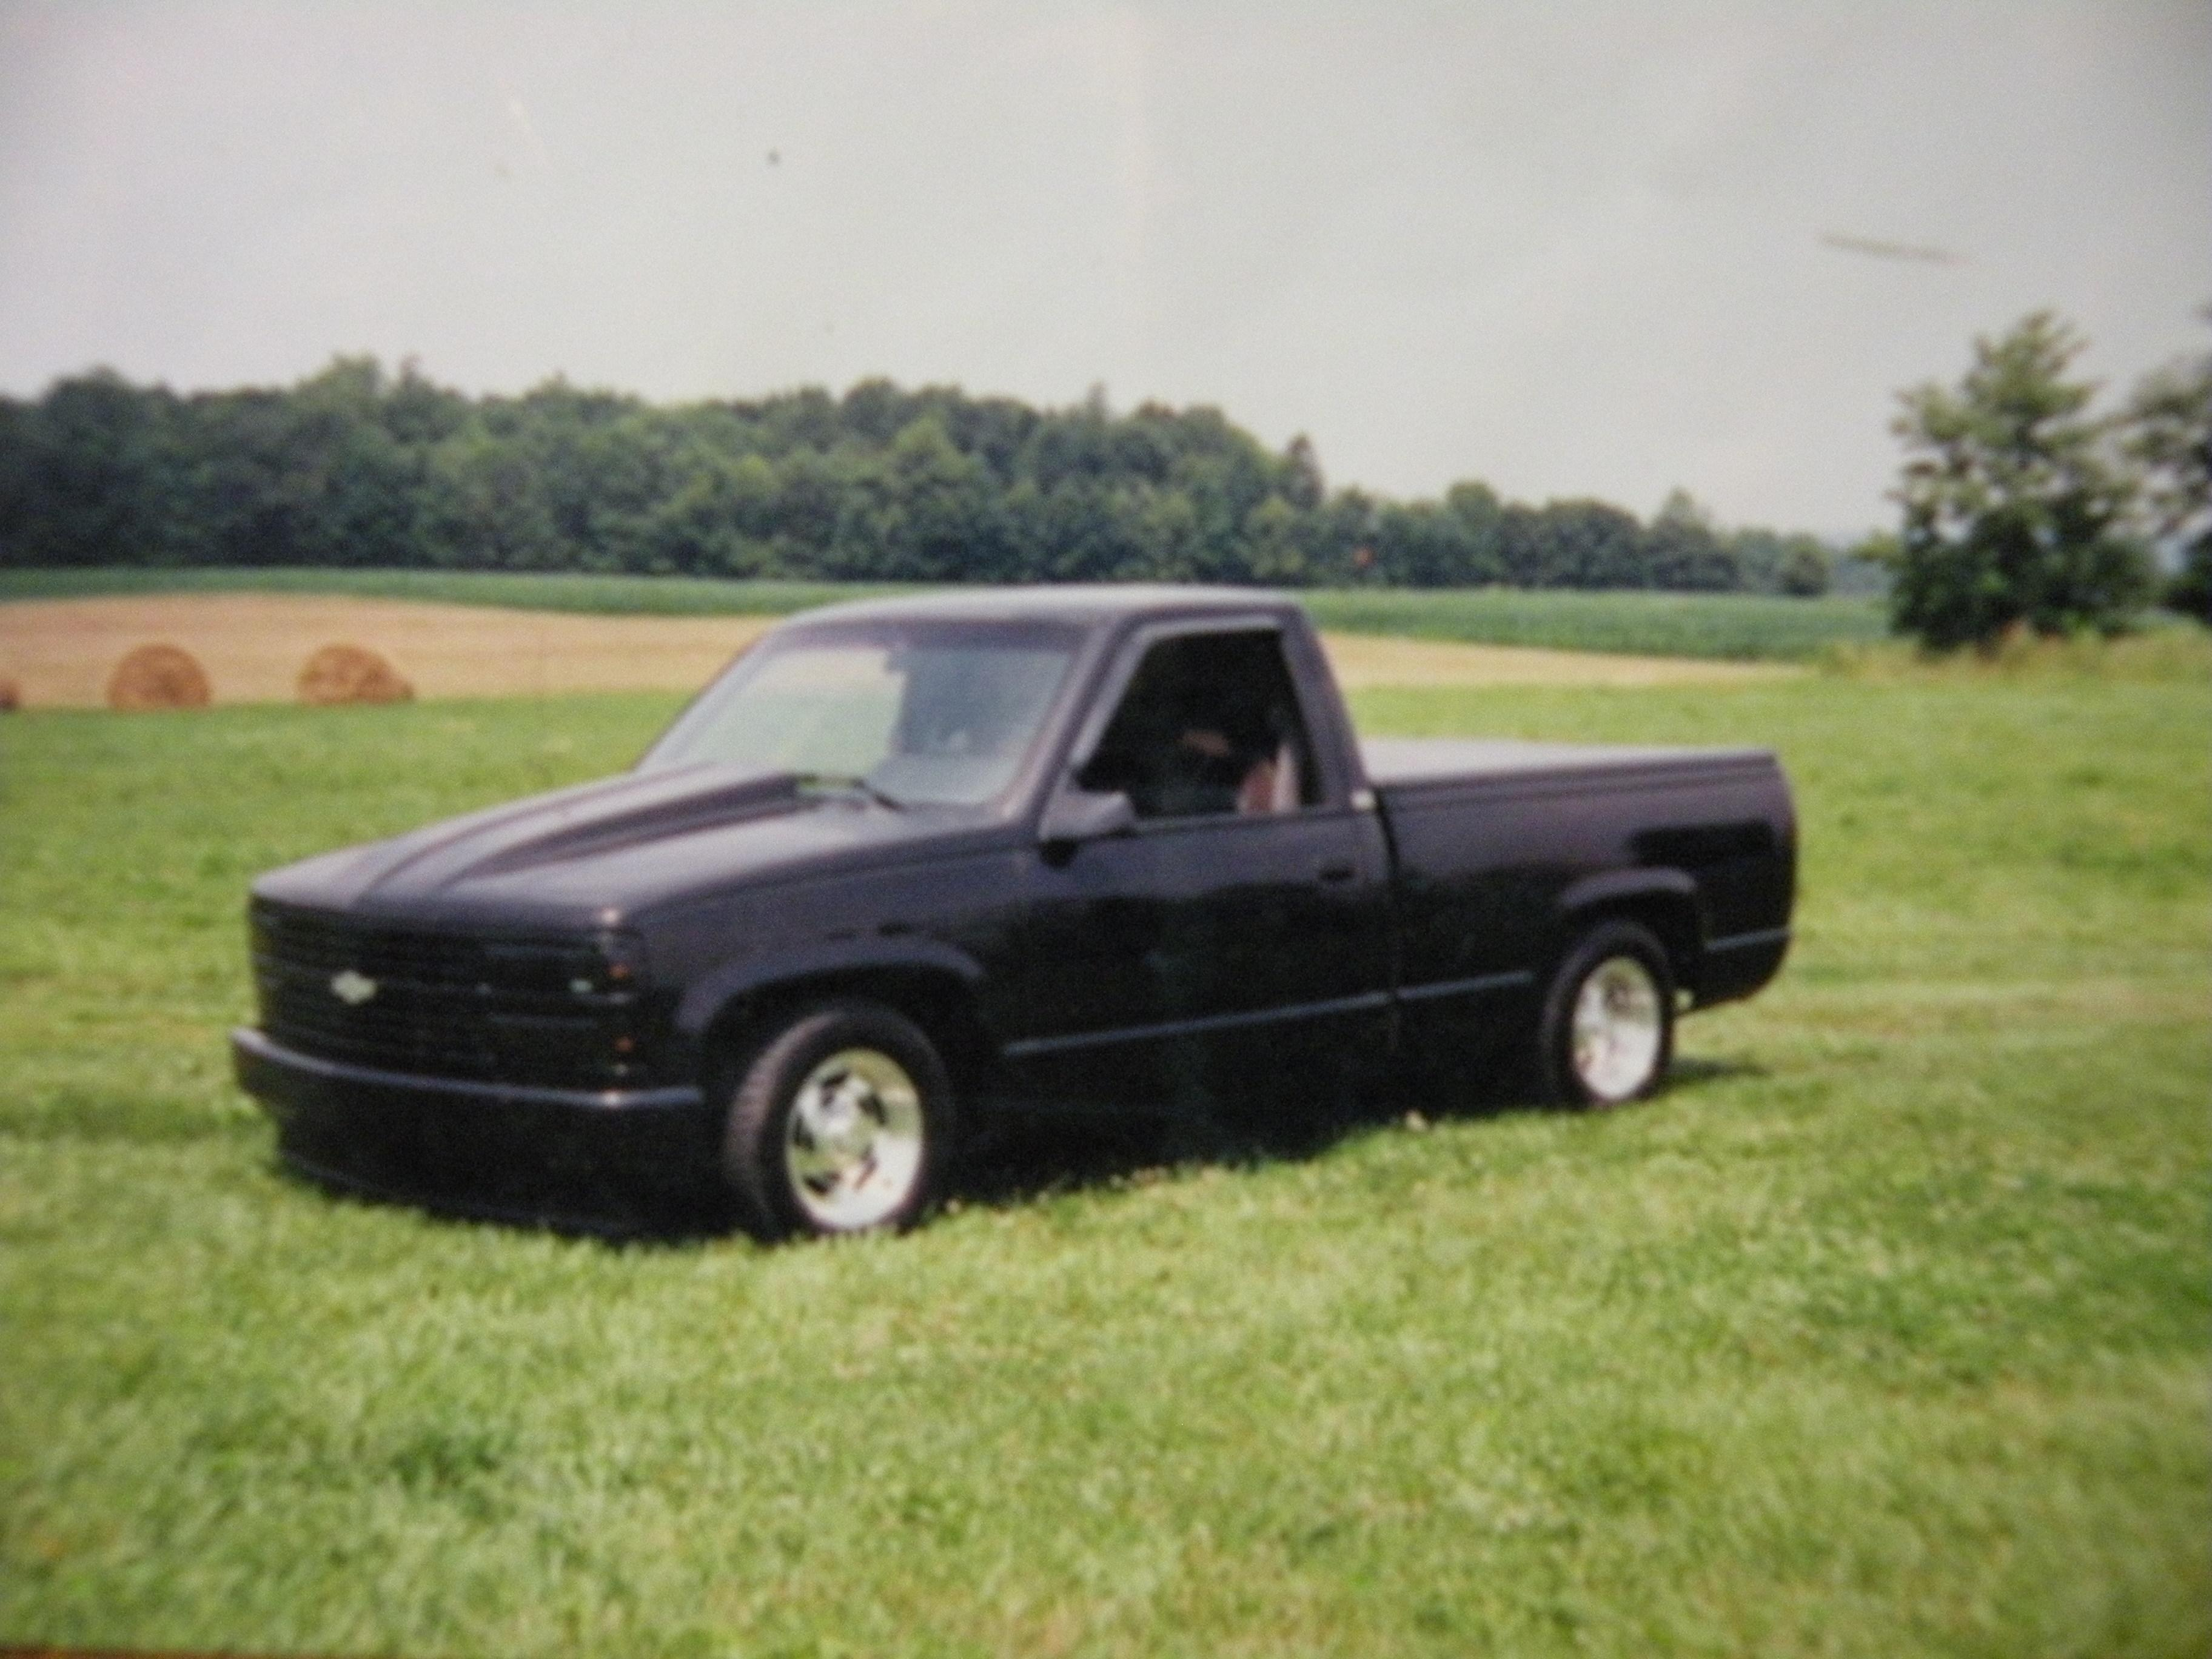 budd26's 1989 Chevrolet 1500 Regular Cab